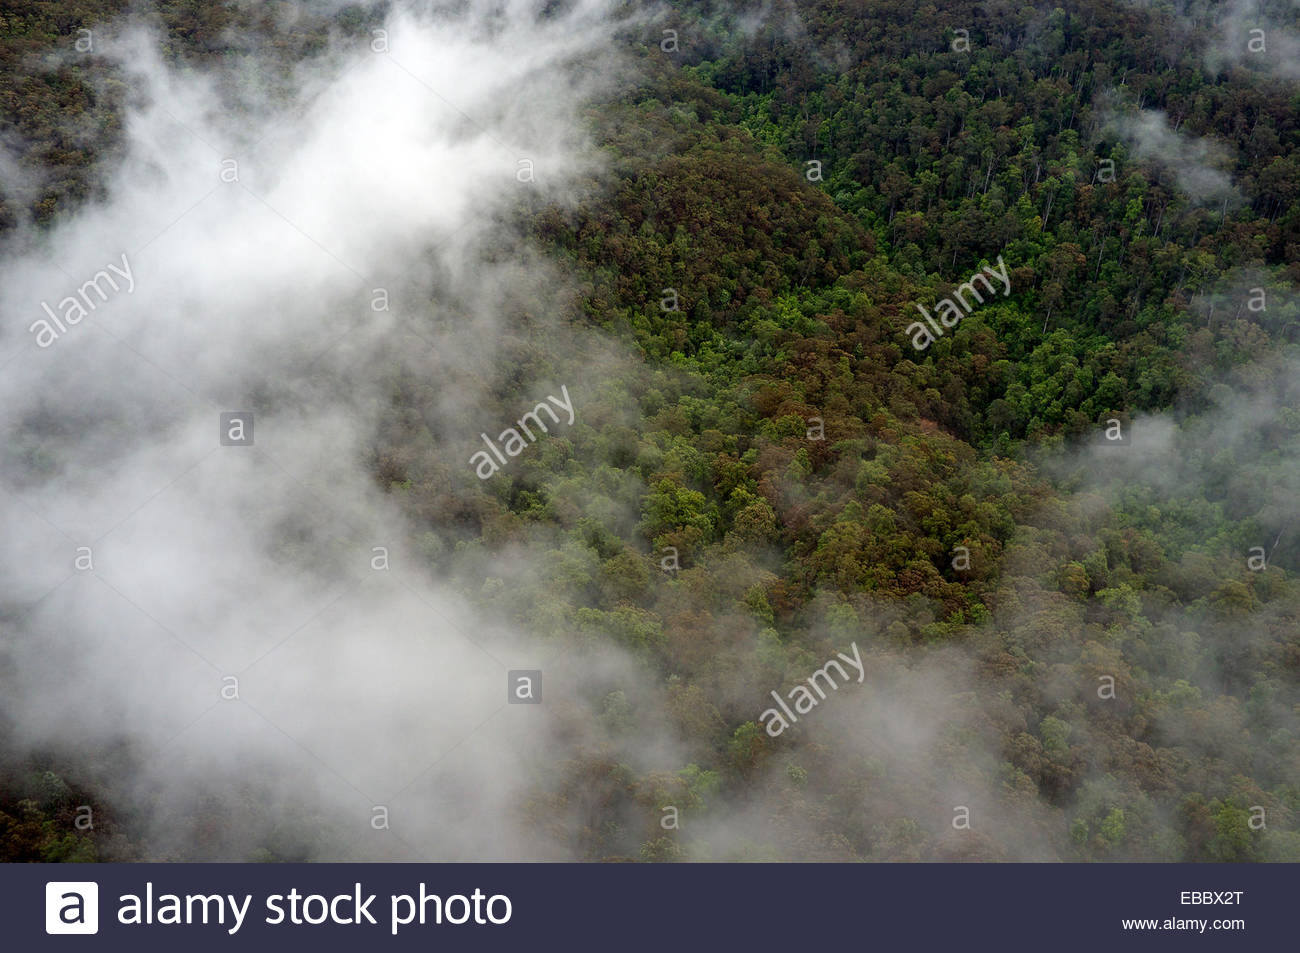 Low clouds above the tree canopy in the Jamison Valley in the Blue Mountains National Park, near Katoomba, NSW, - Stock Image